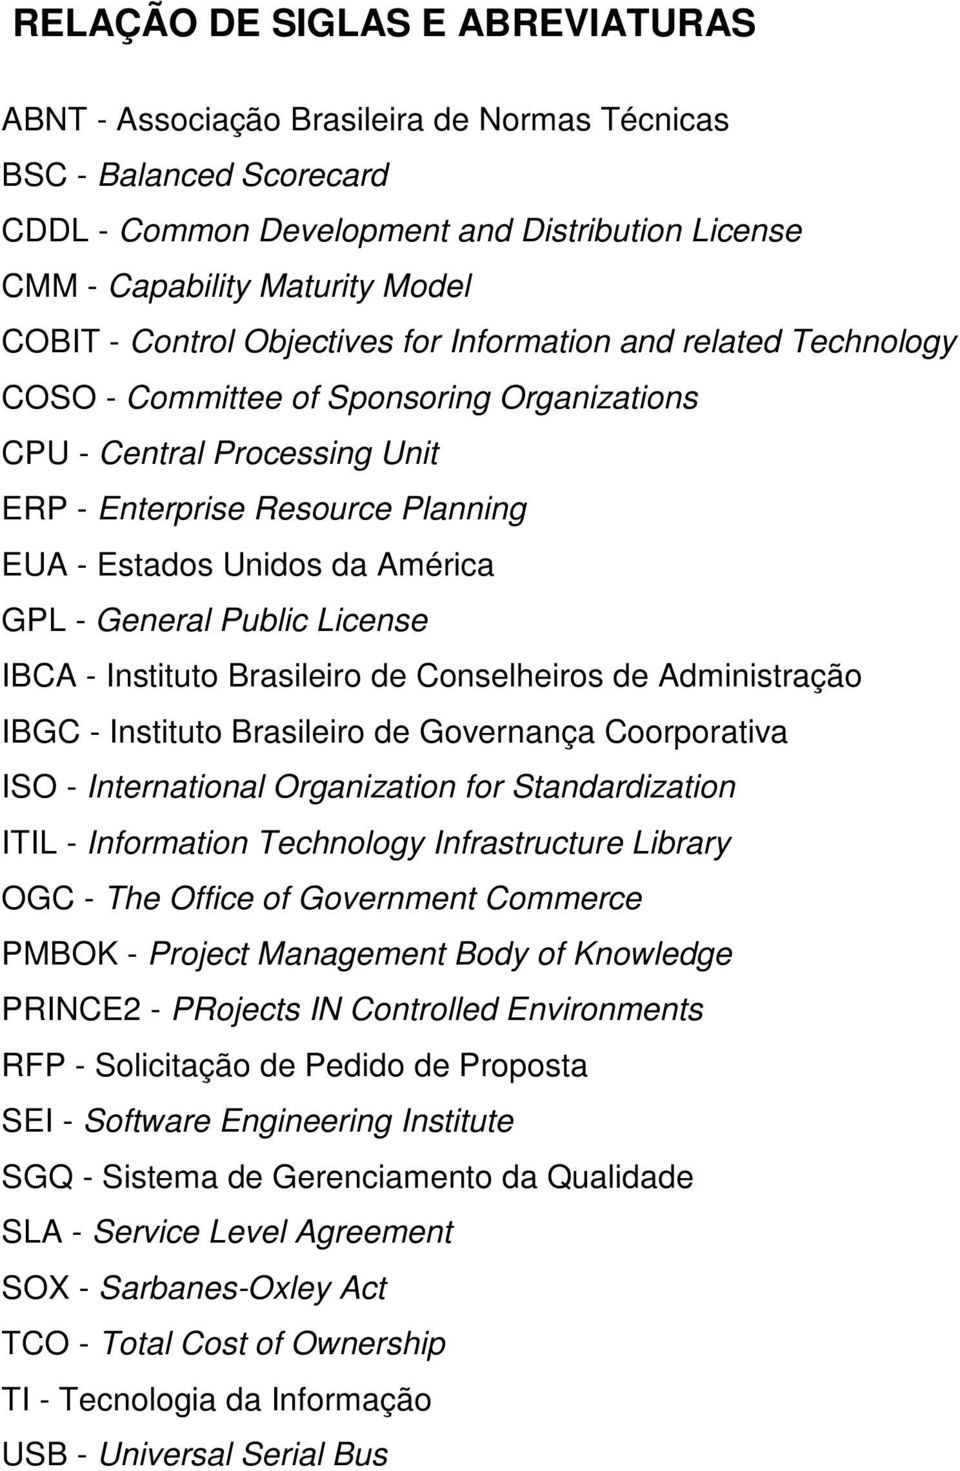 GPL - General Public License IBCA - Instituto Brasileiro de Conselheiros de Administração IBGC - Instituto Brasileiro de Governança Coorporativa ISO - International Organization for Standardization